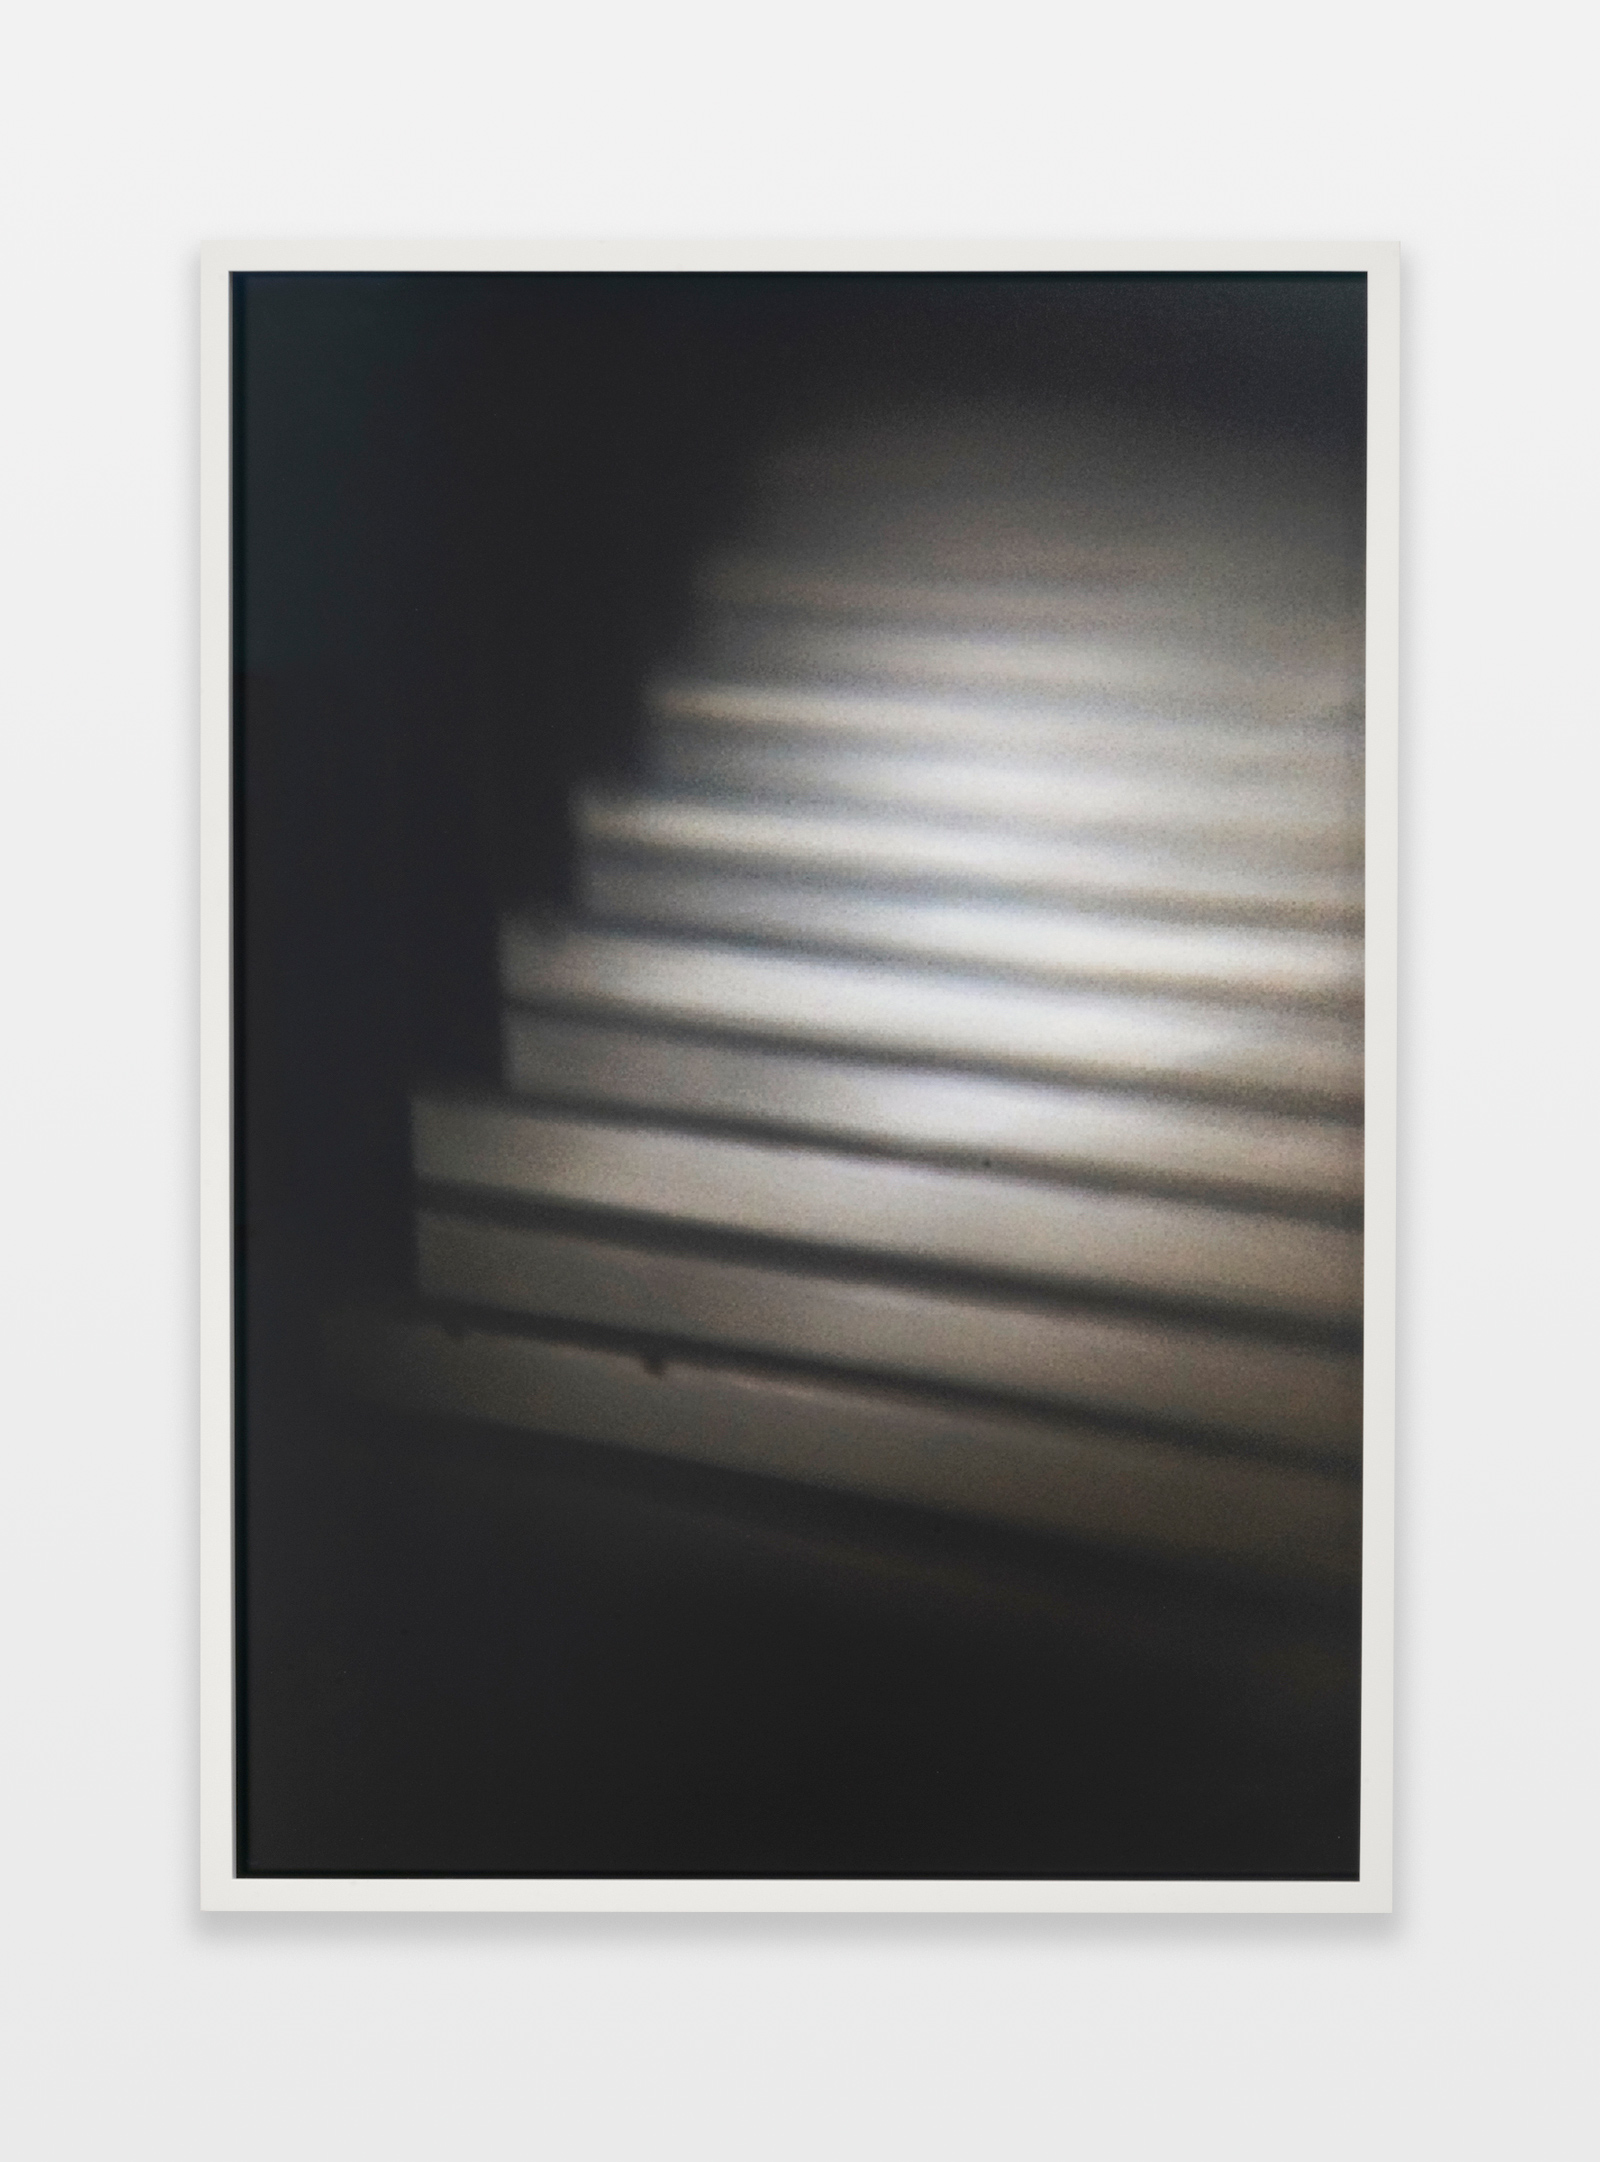 Barbara Ess, Stairs [Shut-In Series], 2018-2019, archival pigment print, 30.56h x 21.94w in.